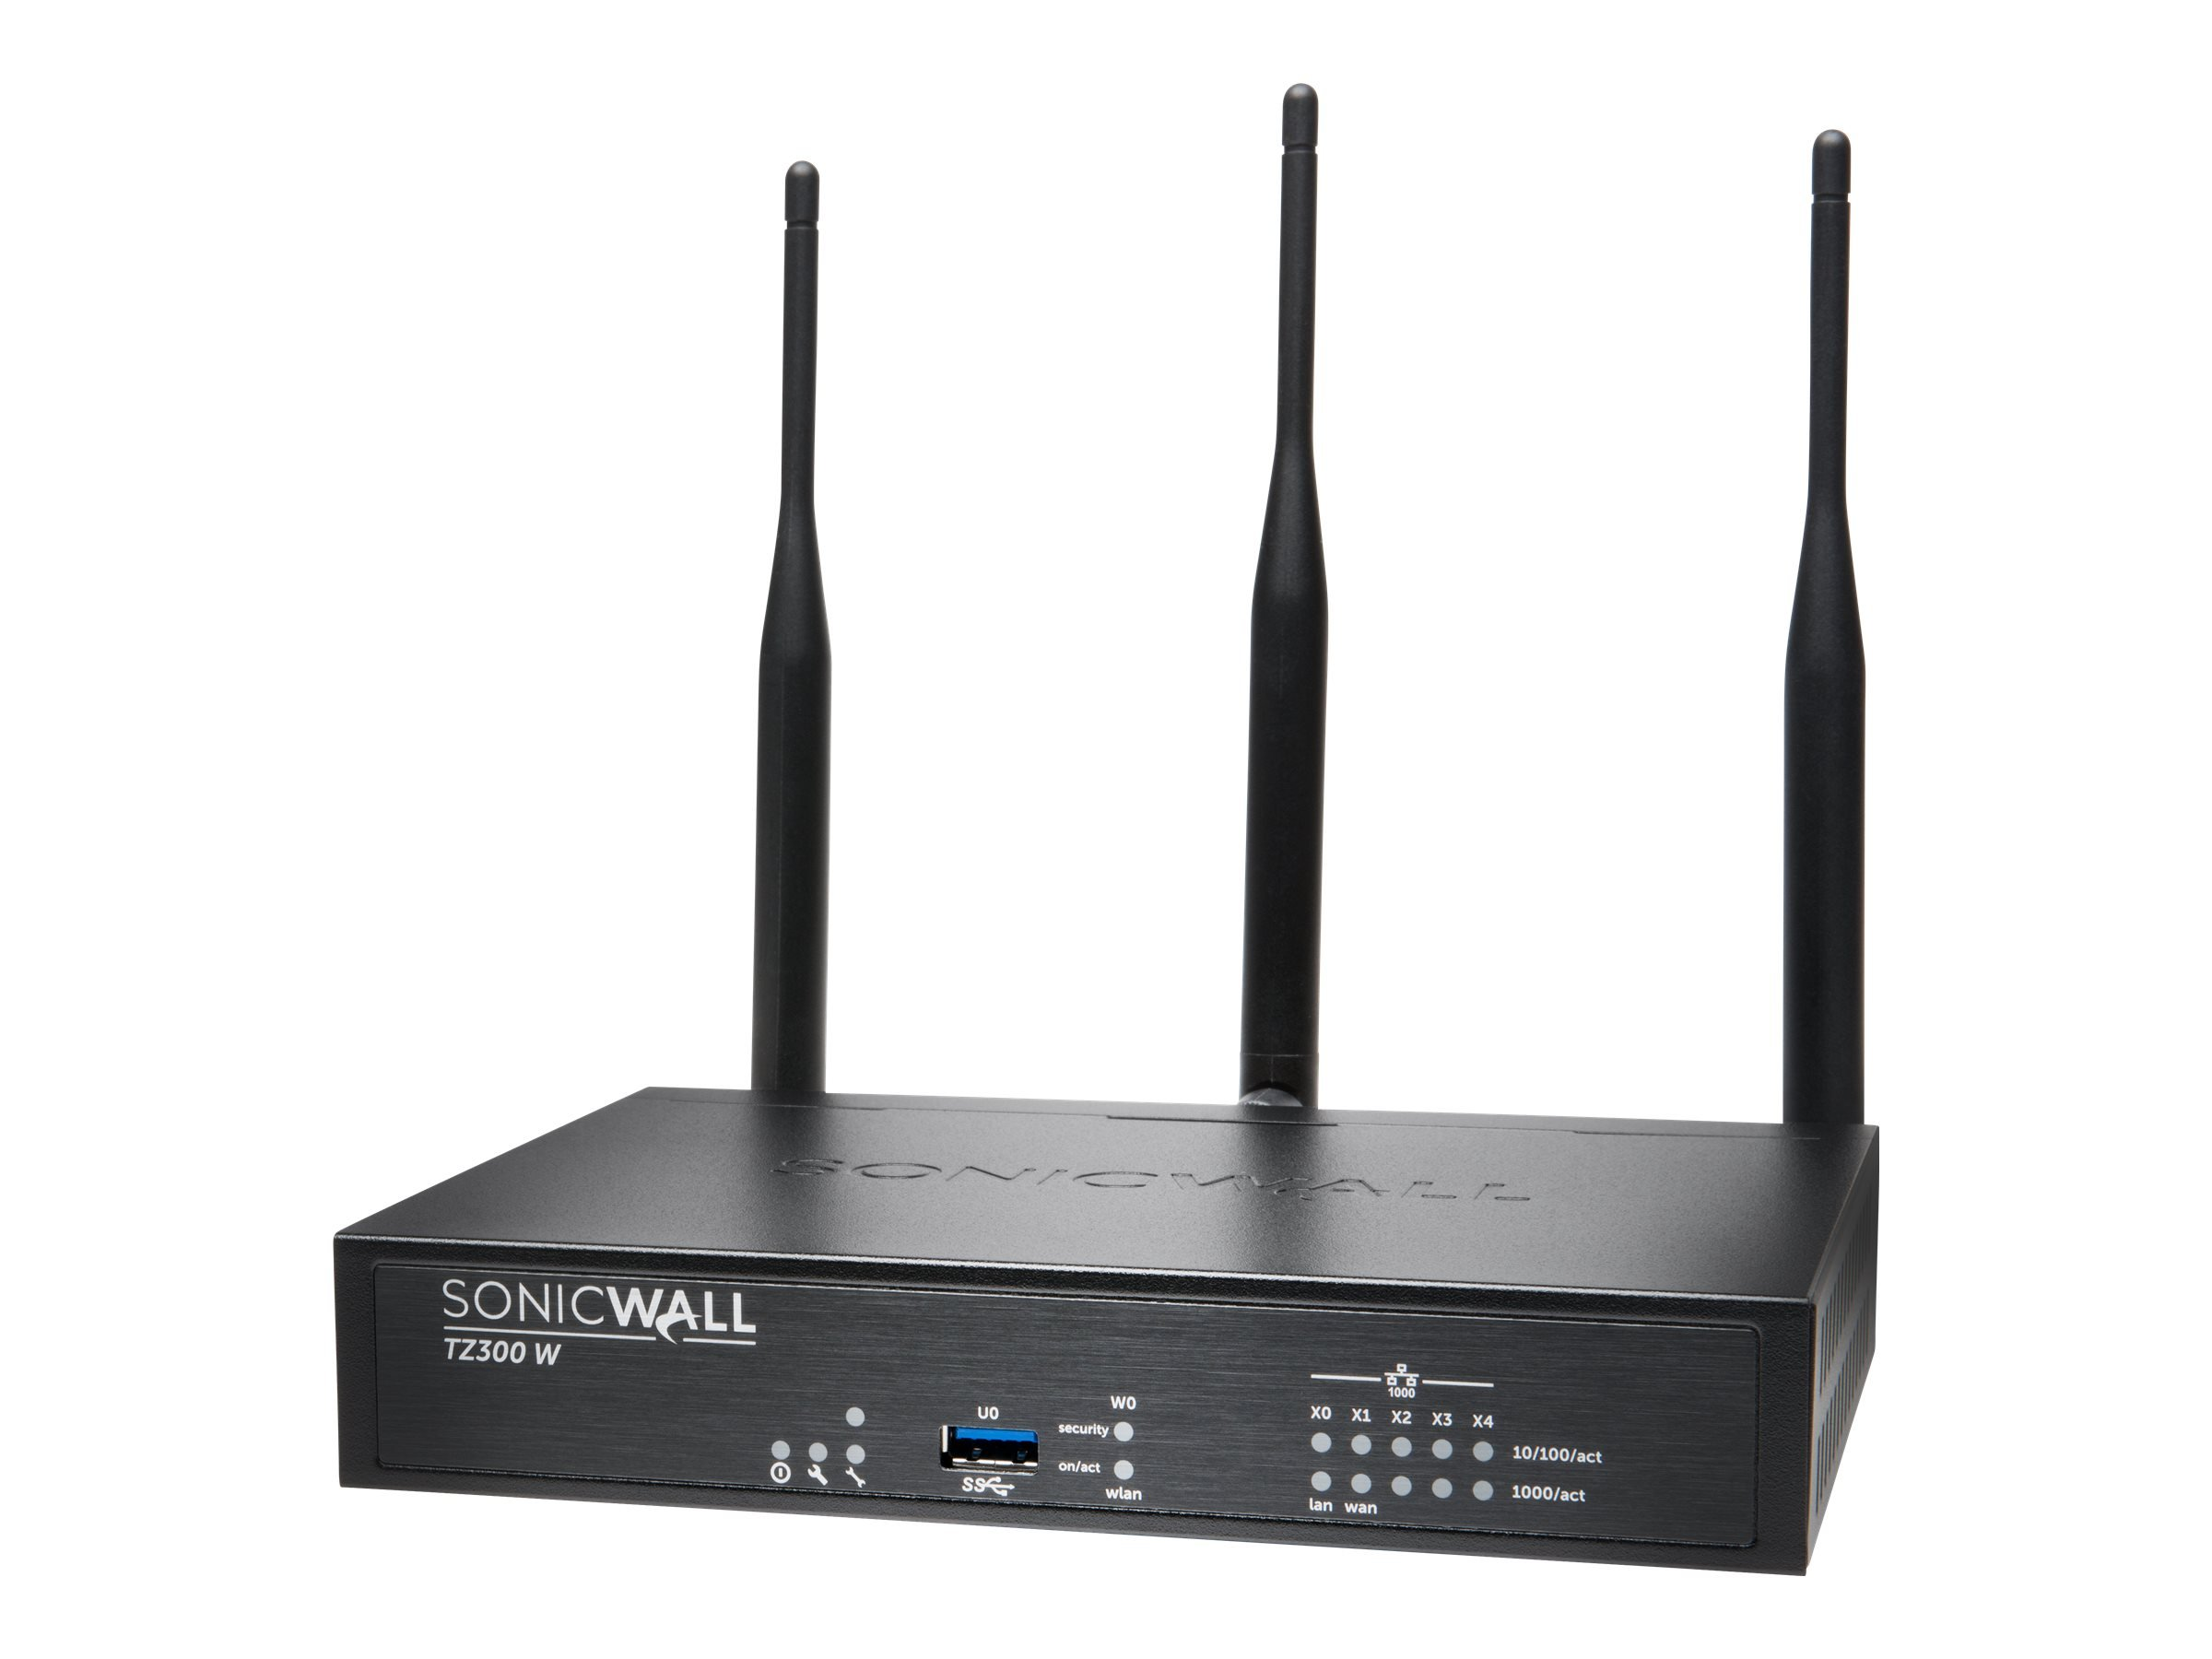 Dell Sonicwall 01-SSC-0216 TZ300 Wireless-AC Security Appliance 5 Ports 10MB/100MB LAN, Gige 802.11 B/A/G/n/AC